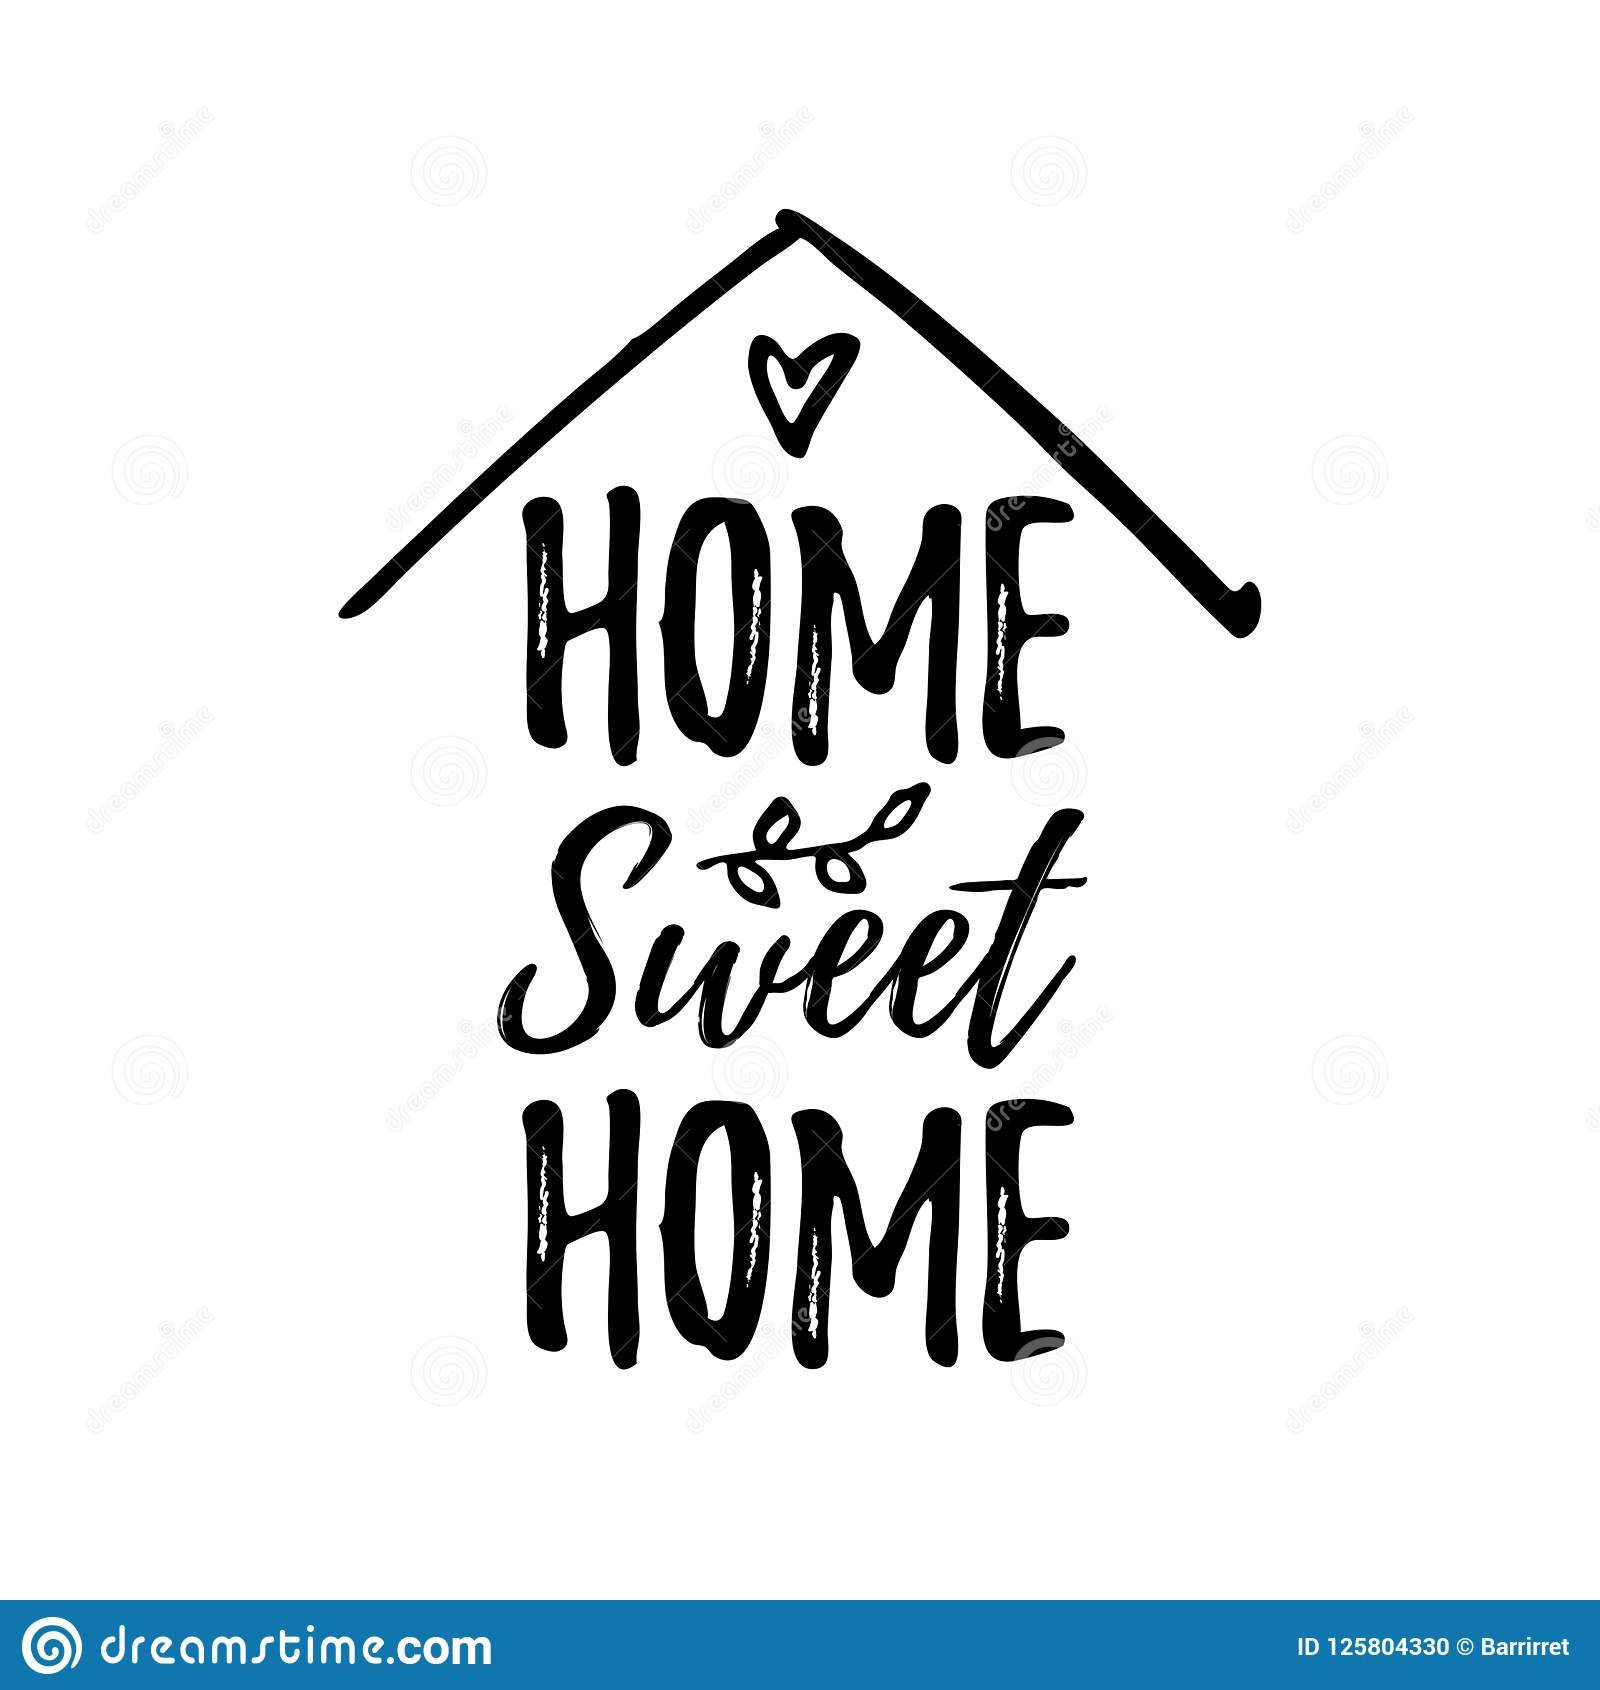 Home Sweet Home Vector Illustration Black Text On White Background Stock Vector Illustration Of Heart Doodle 125804330